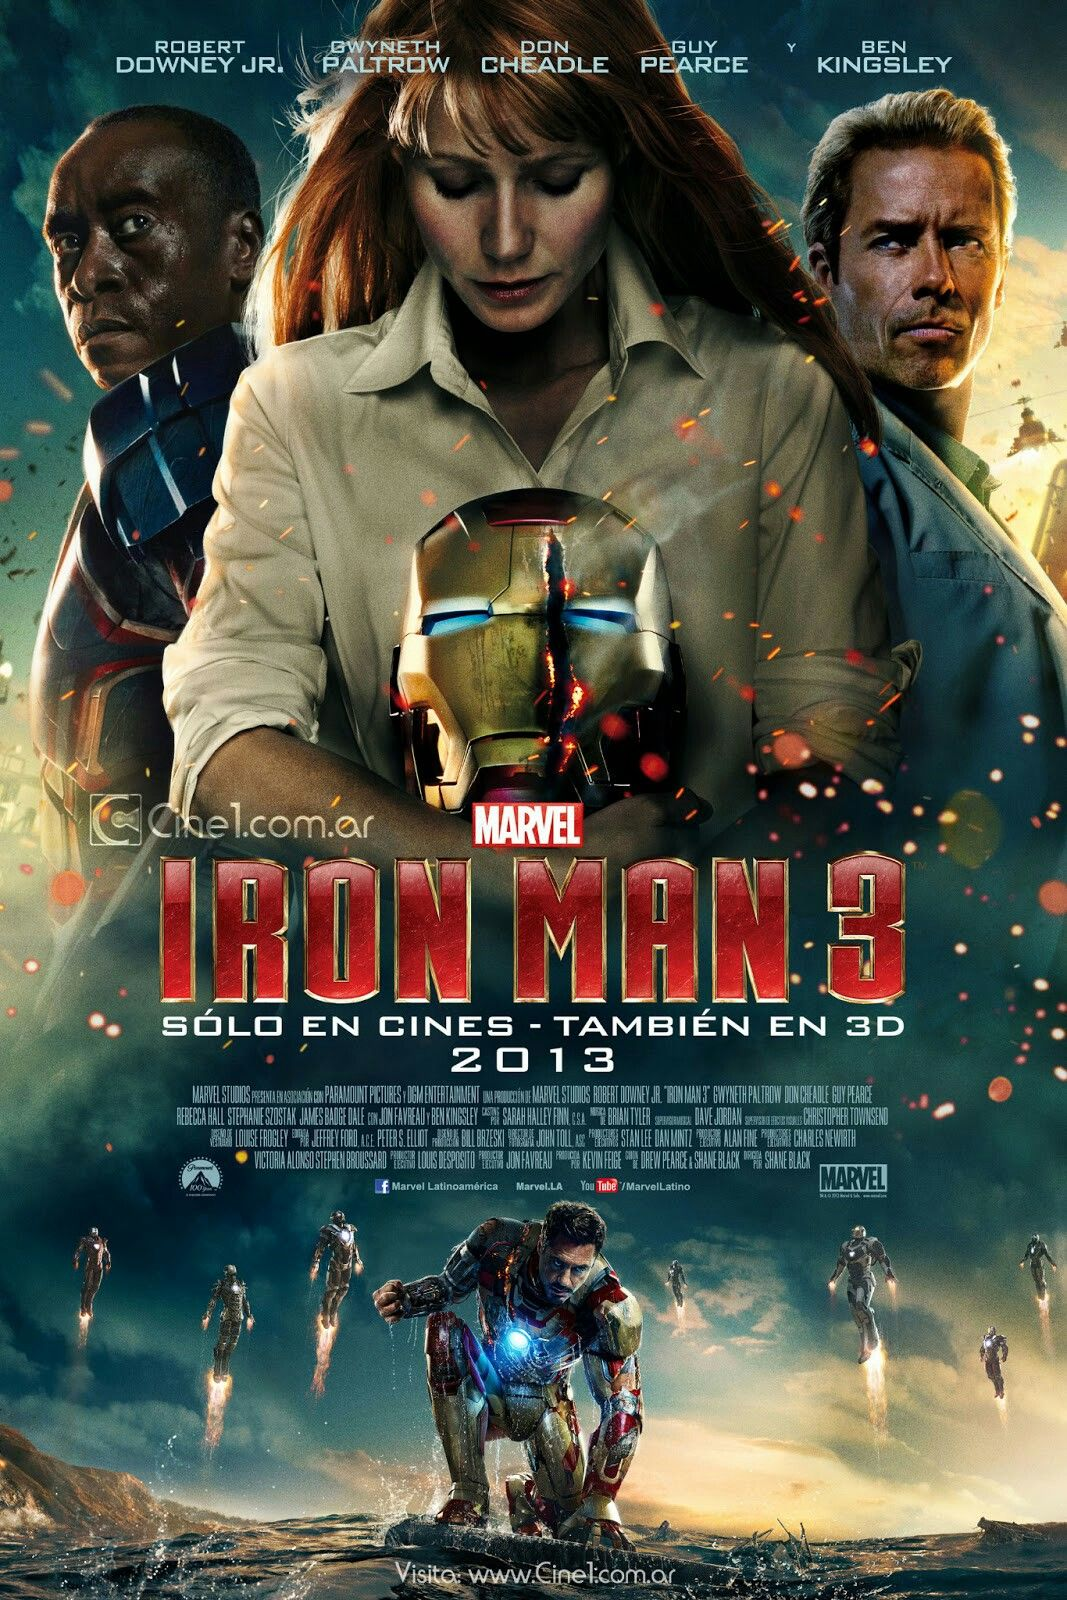 Pin by Nelson Alvarez on POSTER MARVEL AND DC MOVIES | Peliculas marvel, Iron man 3, Peliculas ...